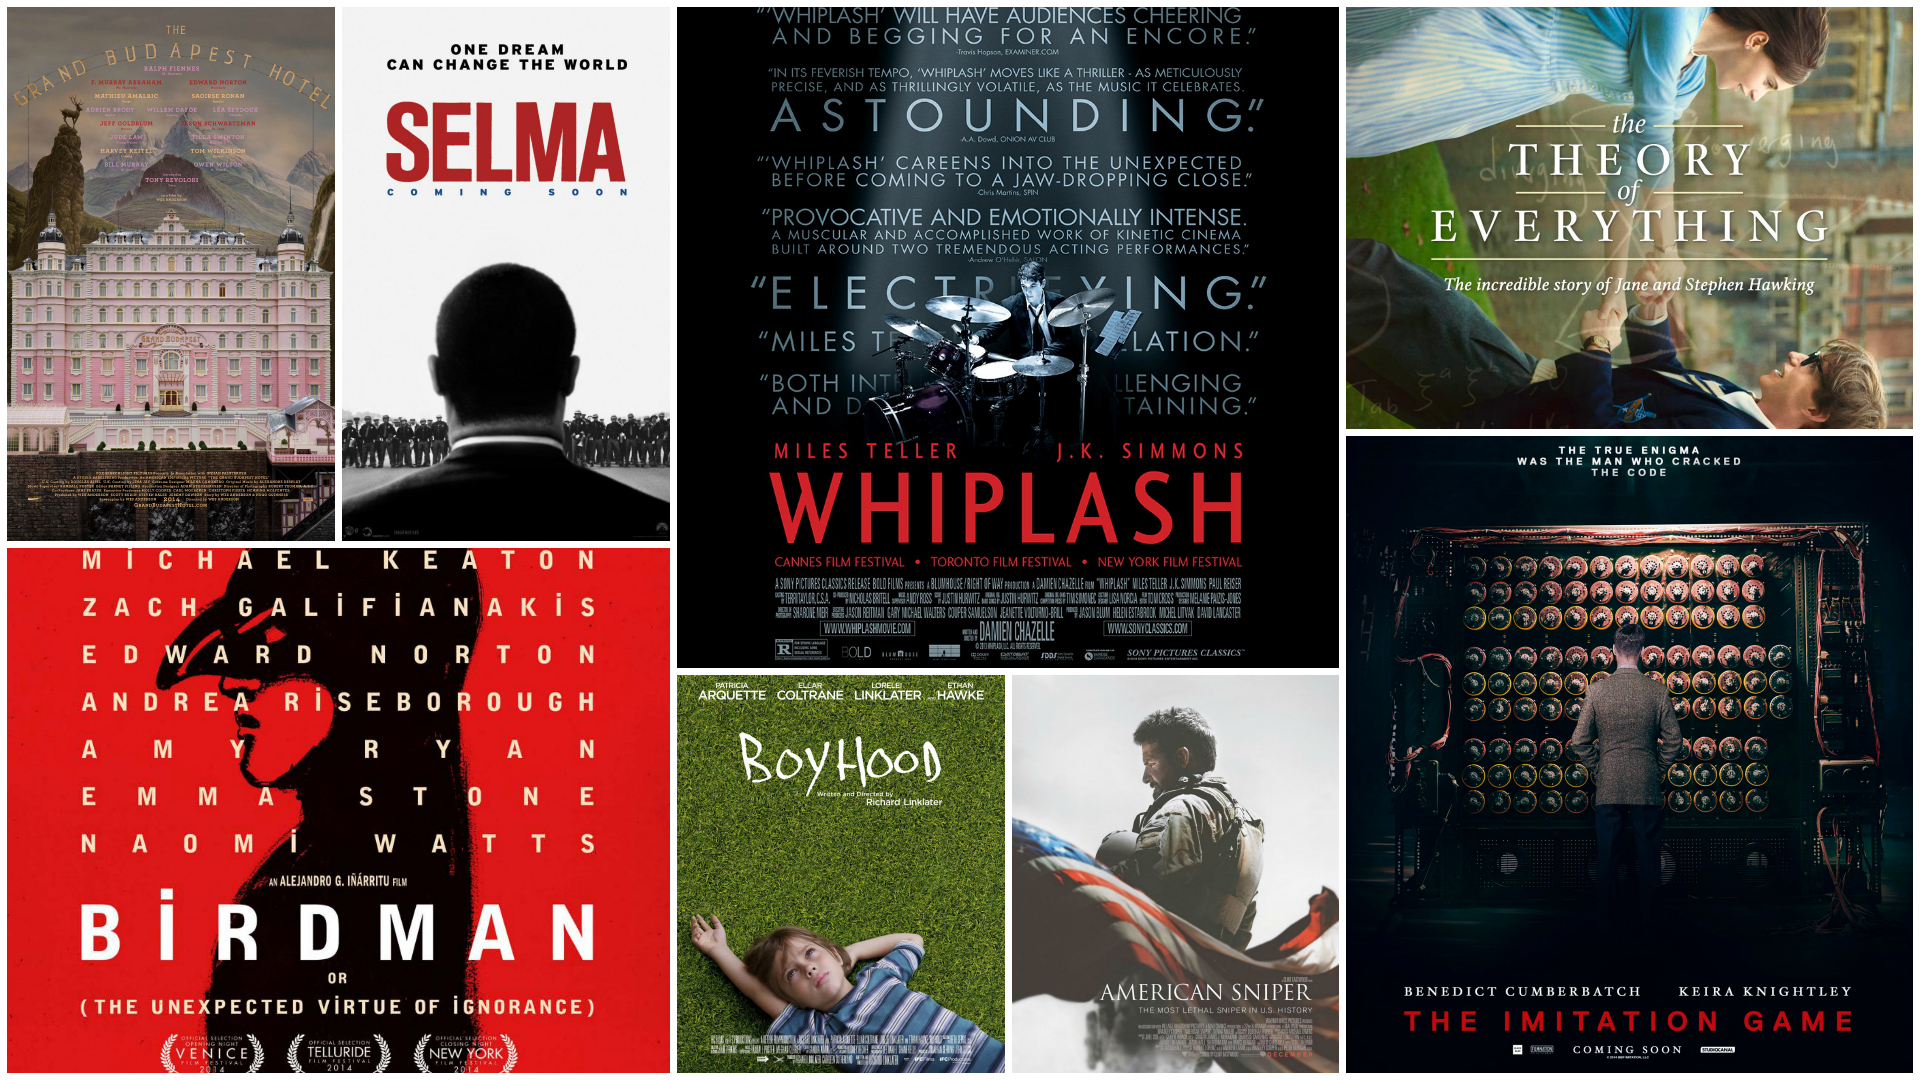 2015 Oscar nominees for Best Picture